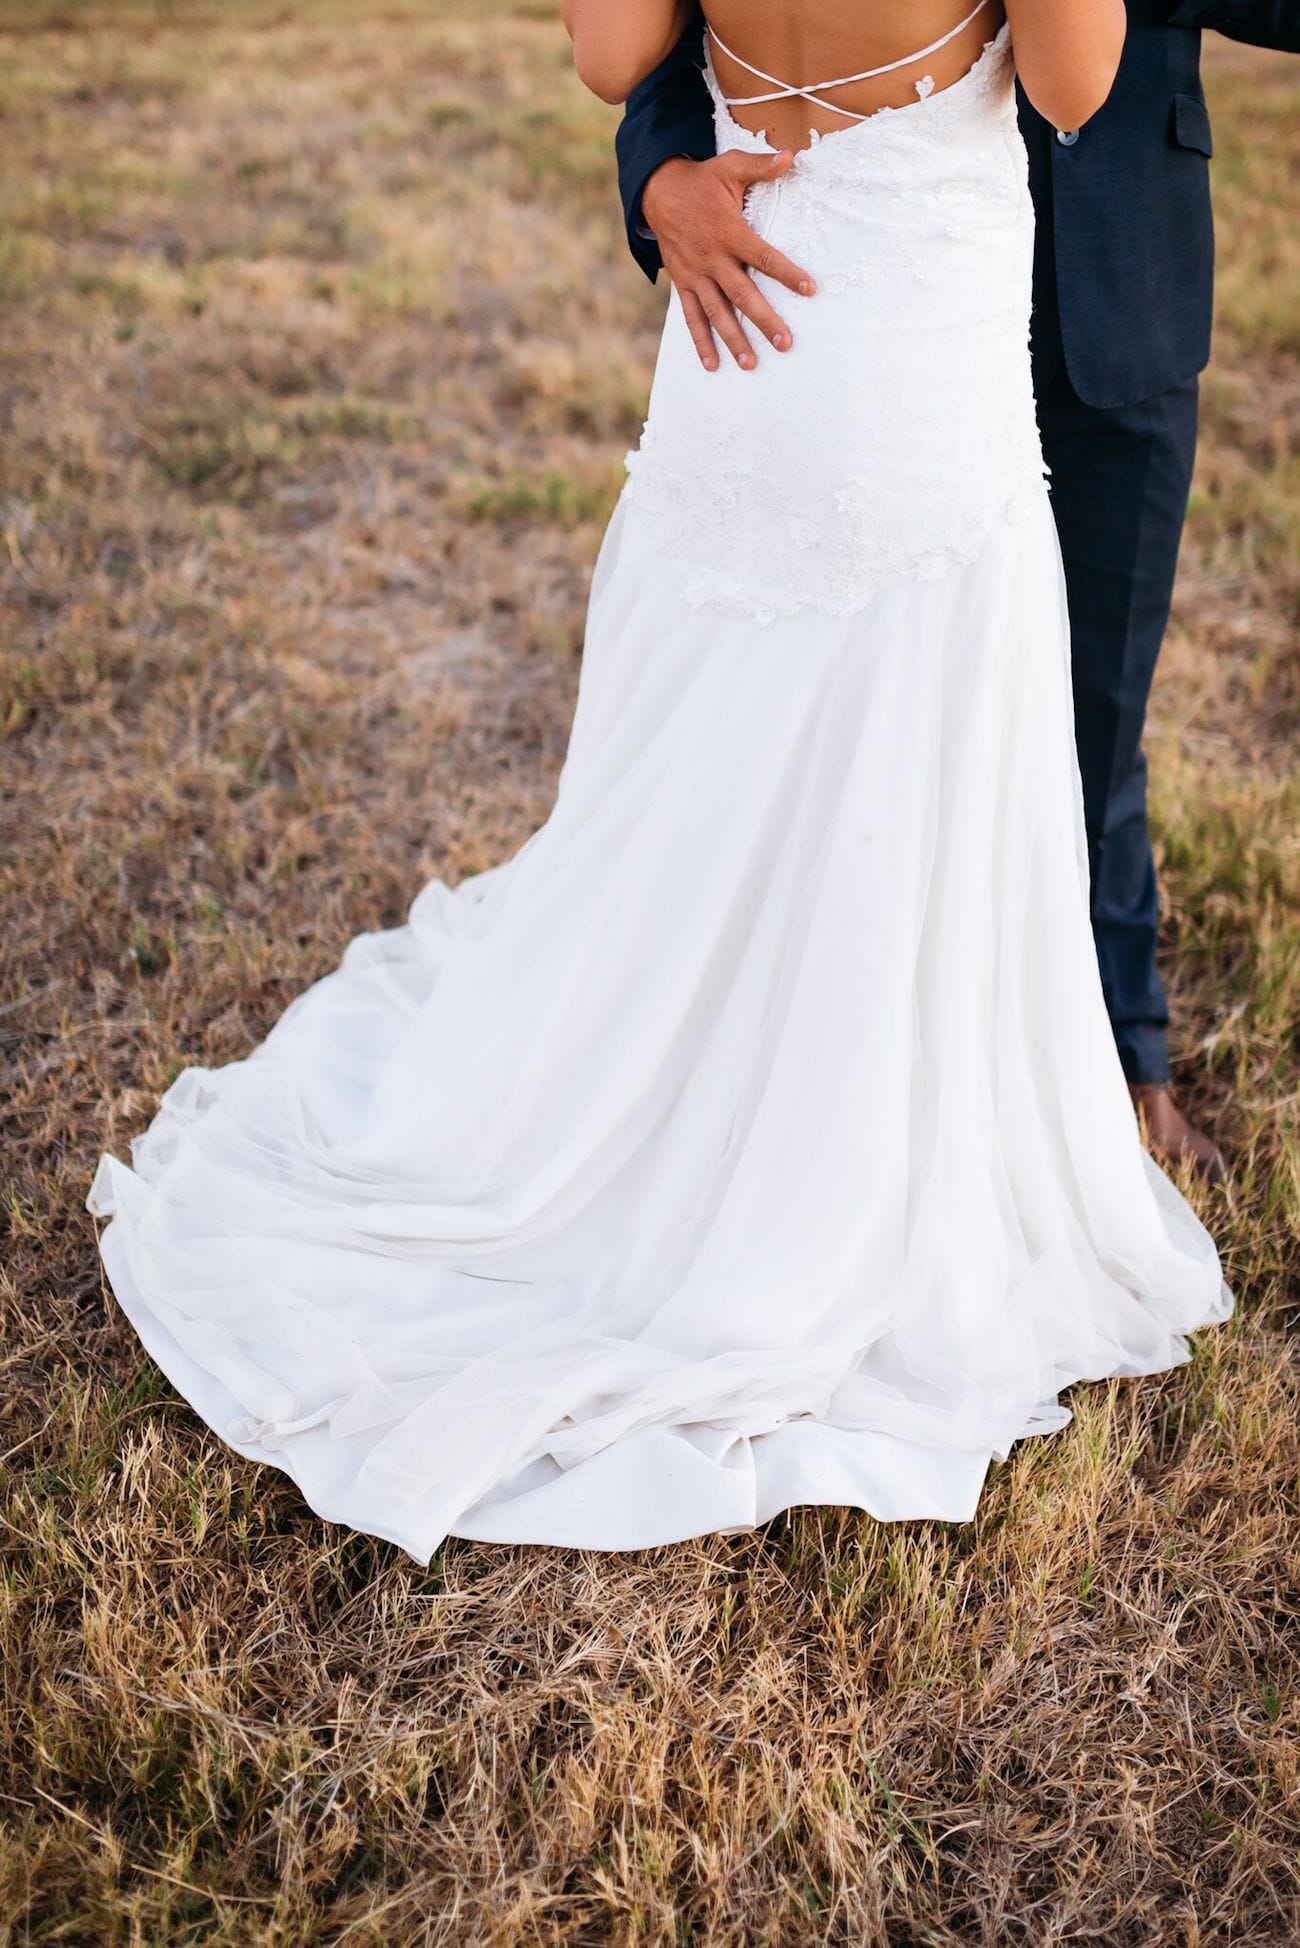 Delicate low back wedding dress with train | Credit: Matthew Carr